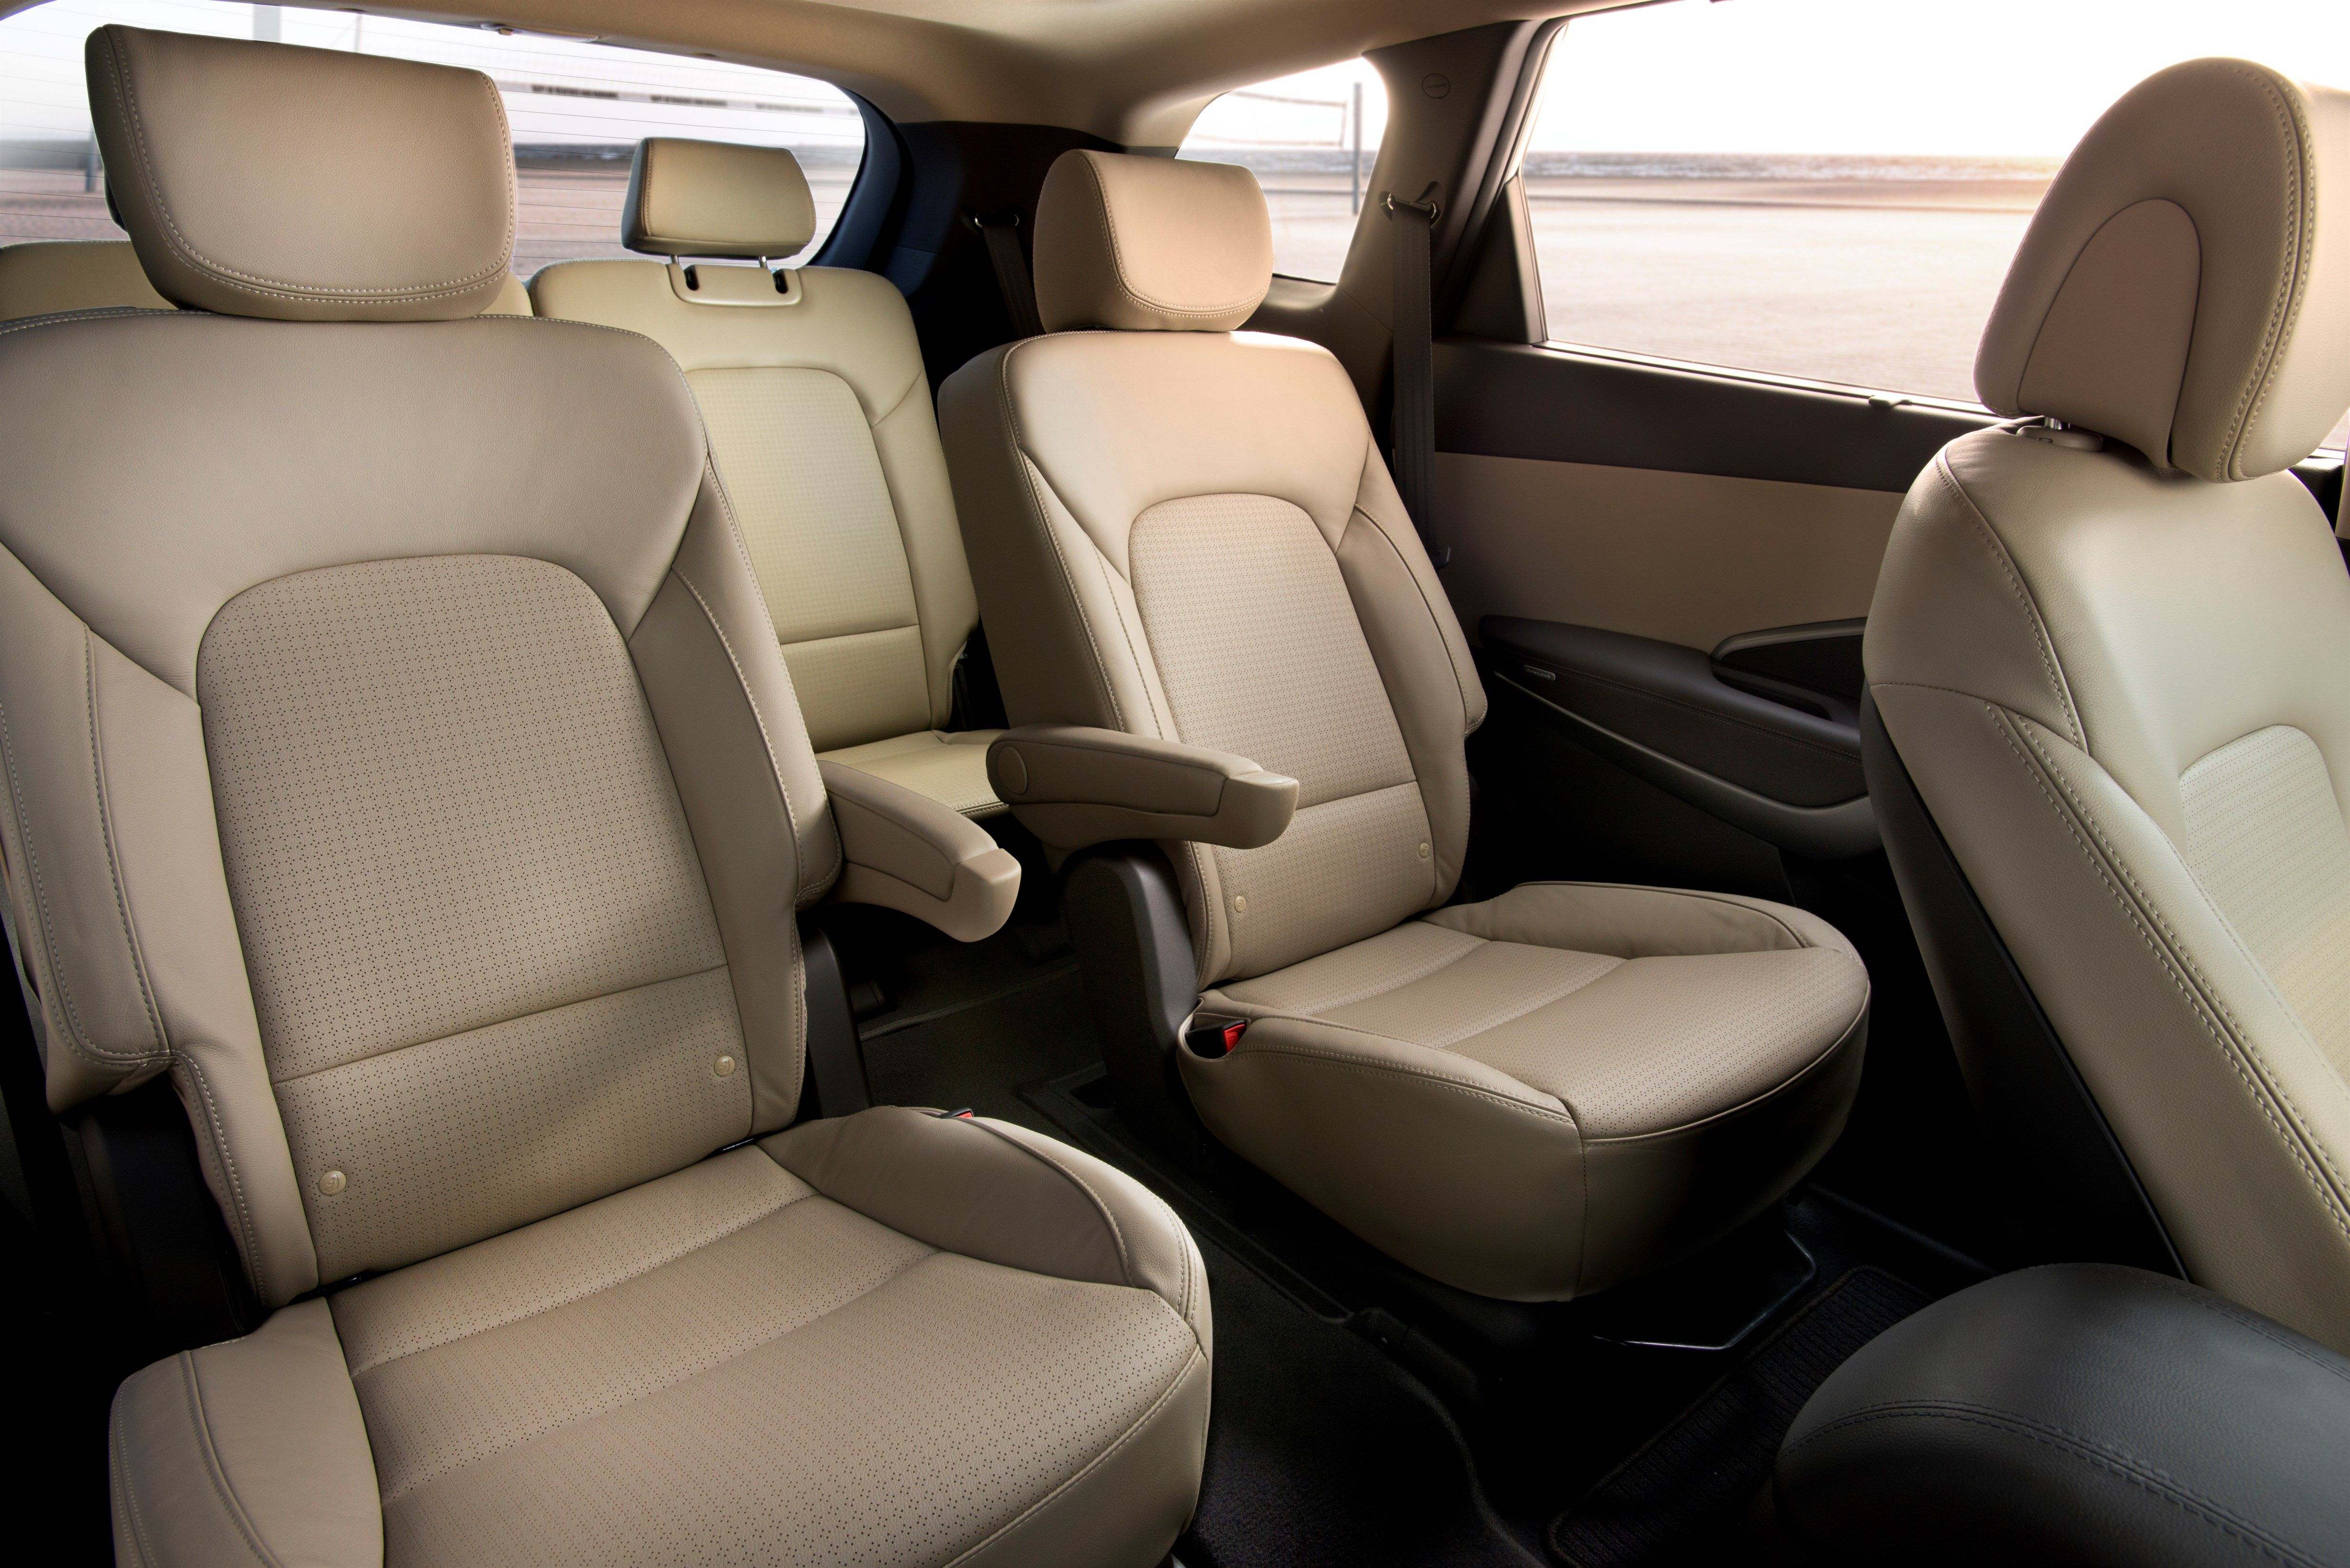 Suv With Captain Chairs 2014 Hyundai Santa Fe Limited With 2nd Row Captains Chairs 2014